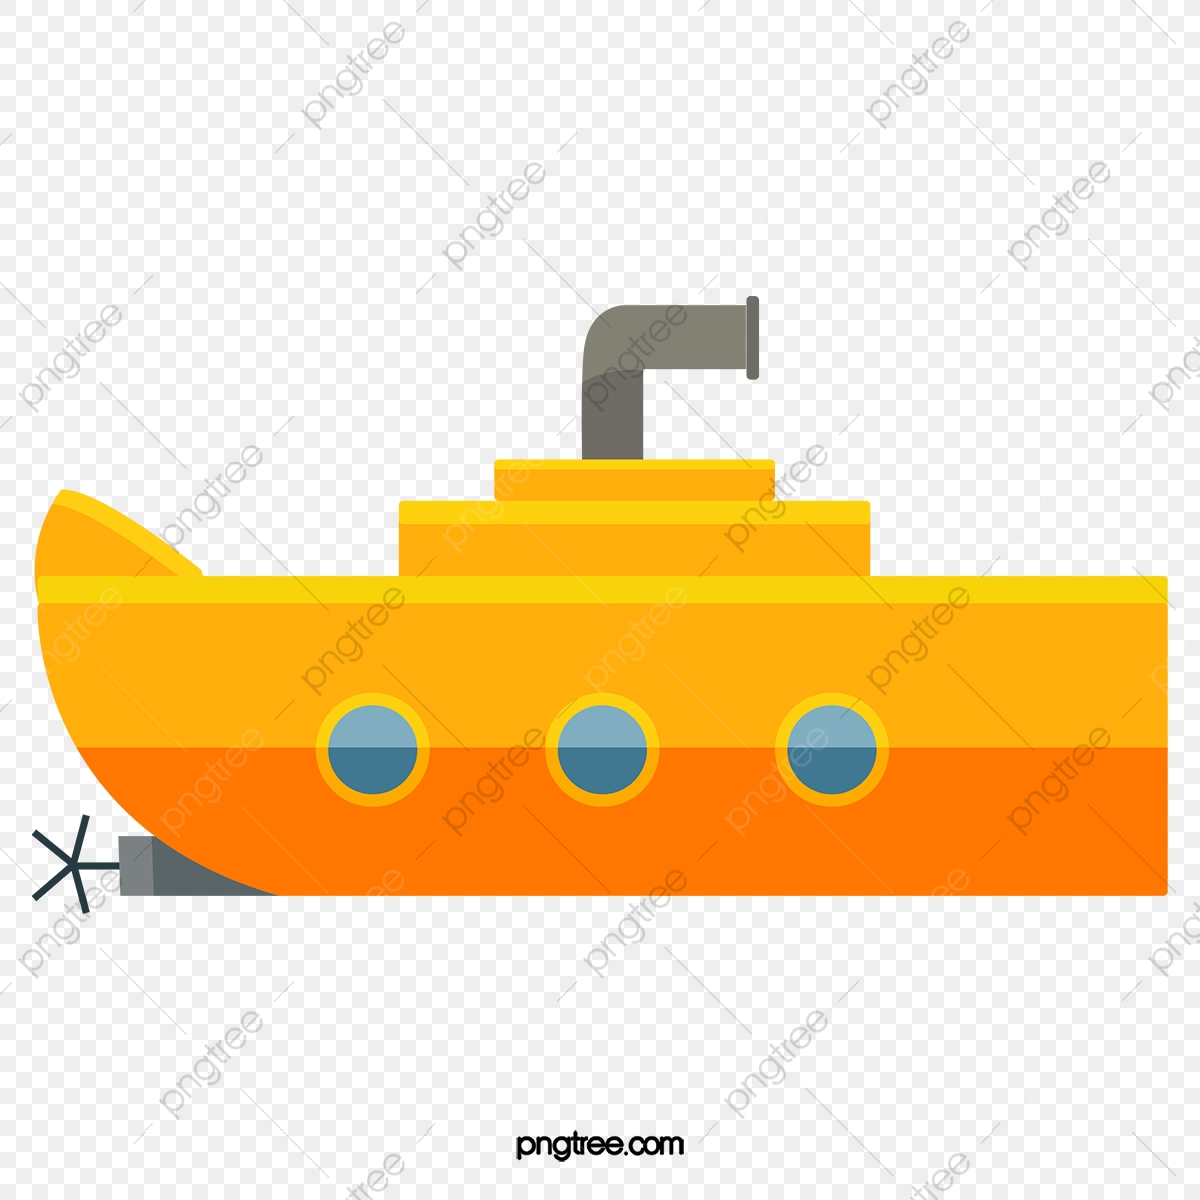 Submarine, Ferry, Cartoon PNG Transparent Clipart Image and PSD File